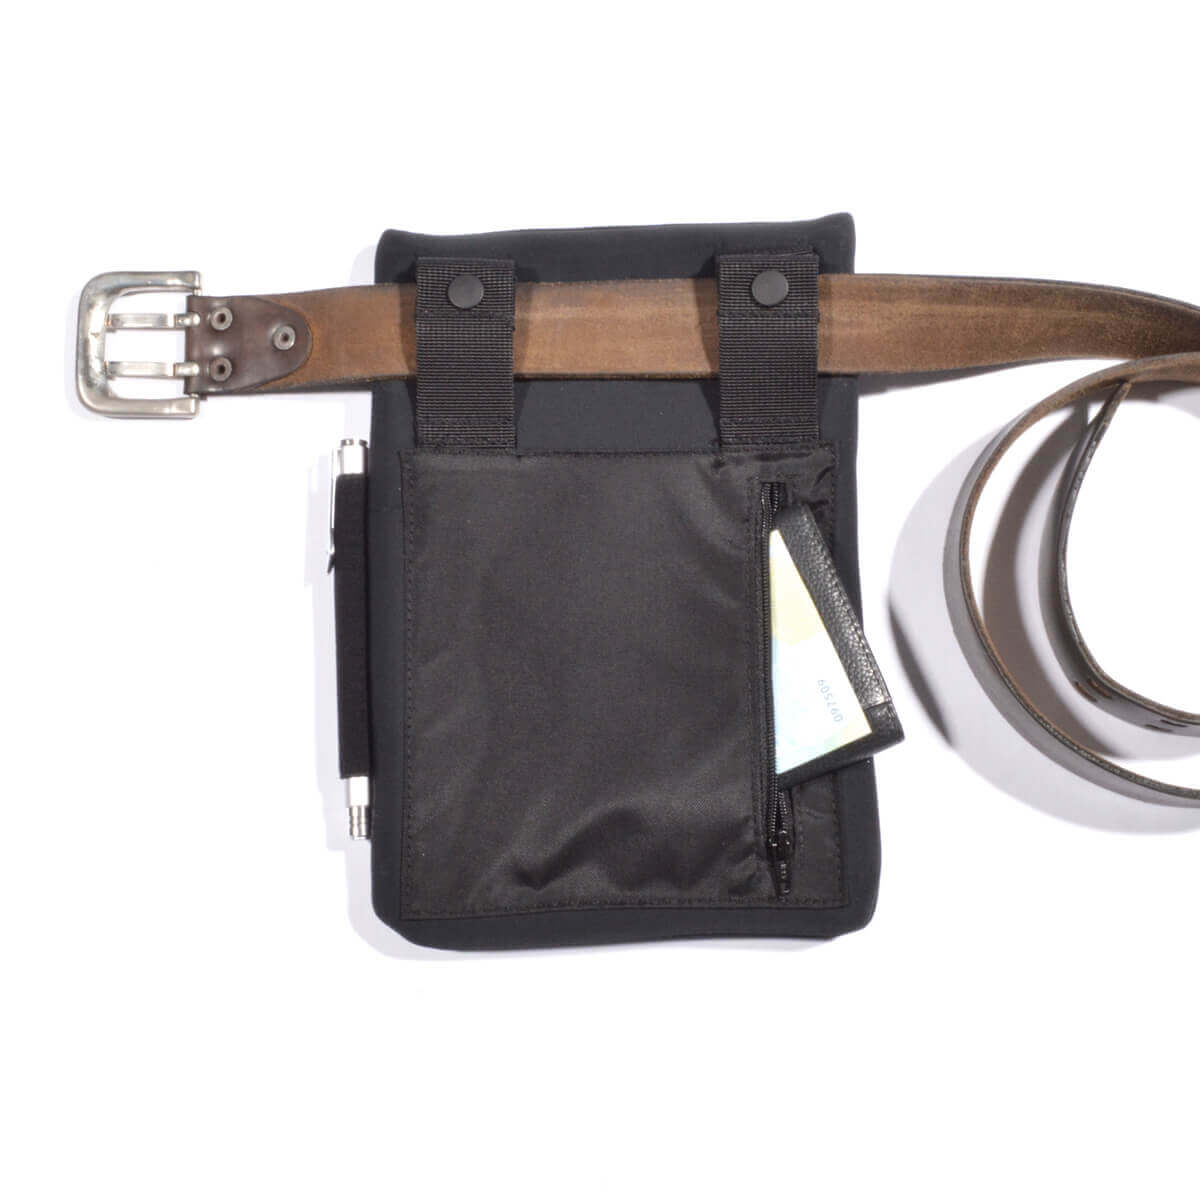 81024f0e5d62 Tablet carry pouch for 7-8